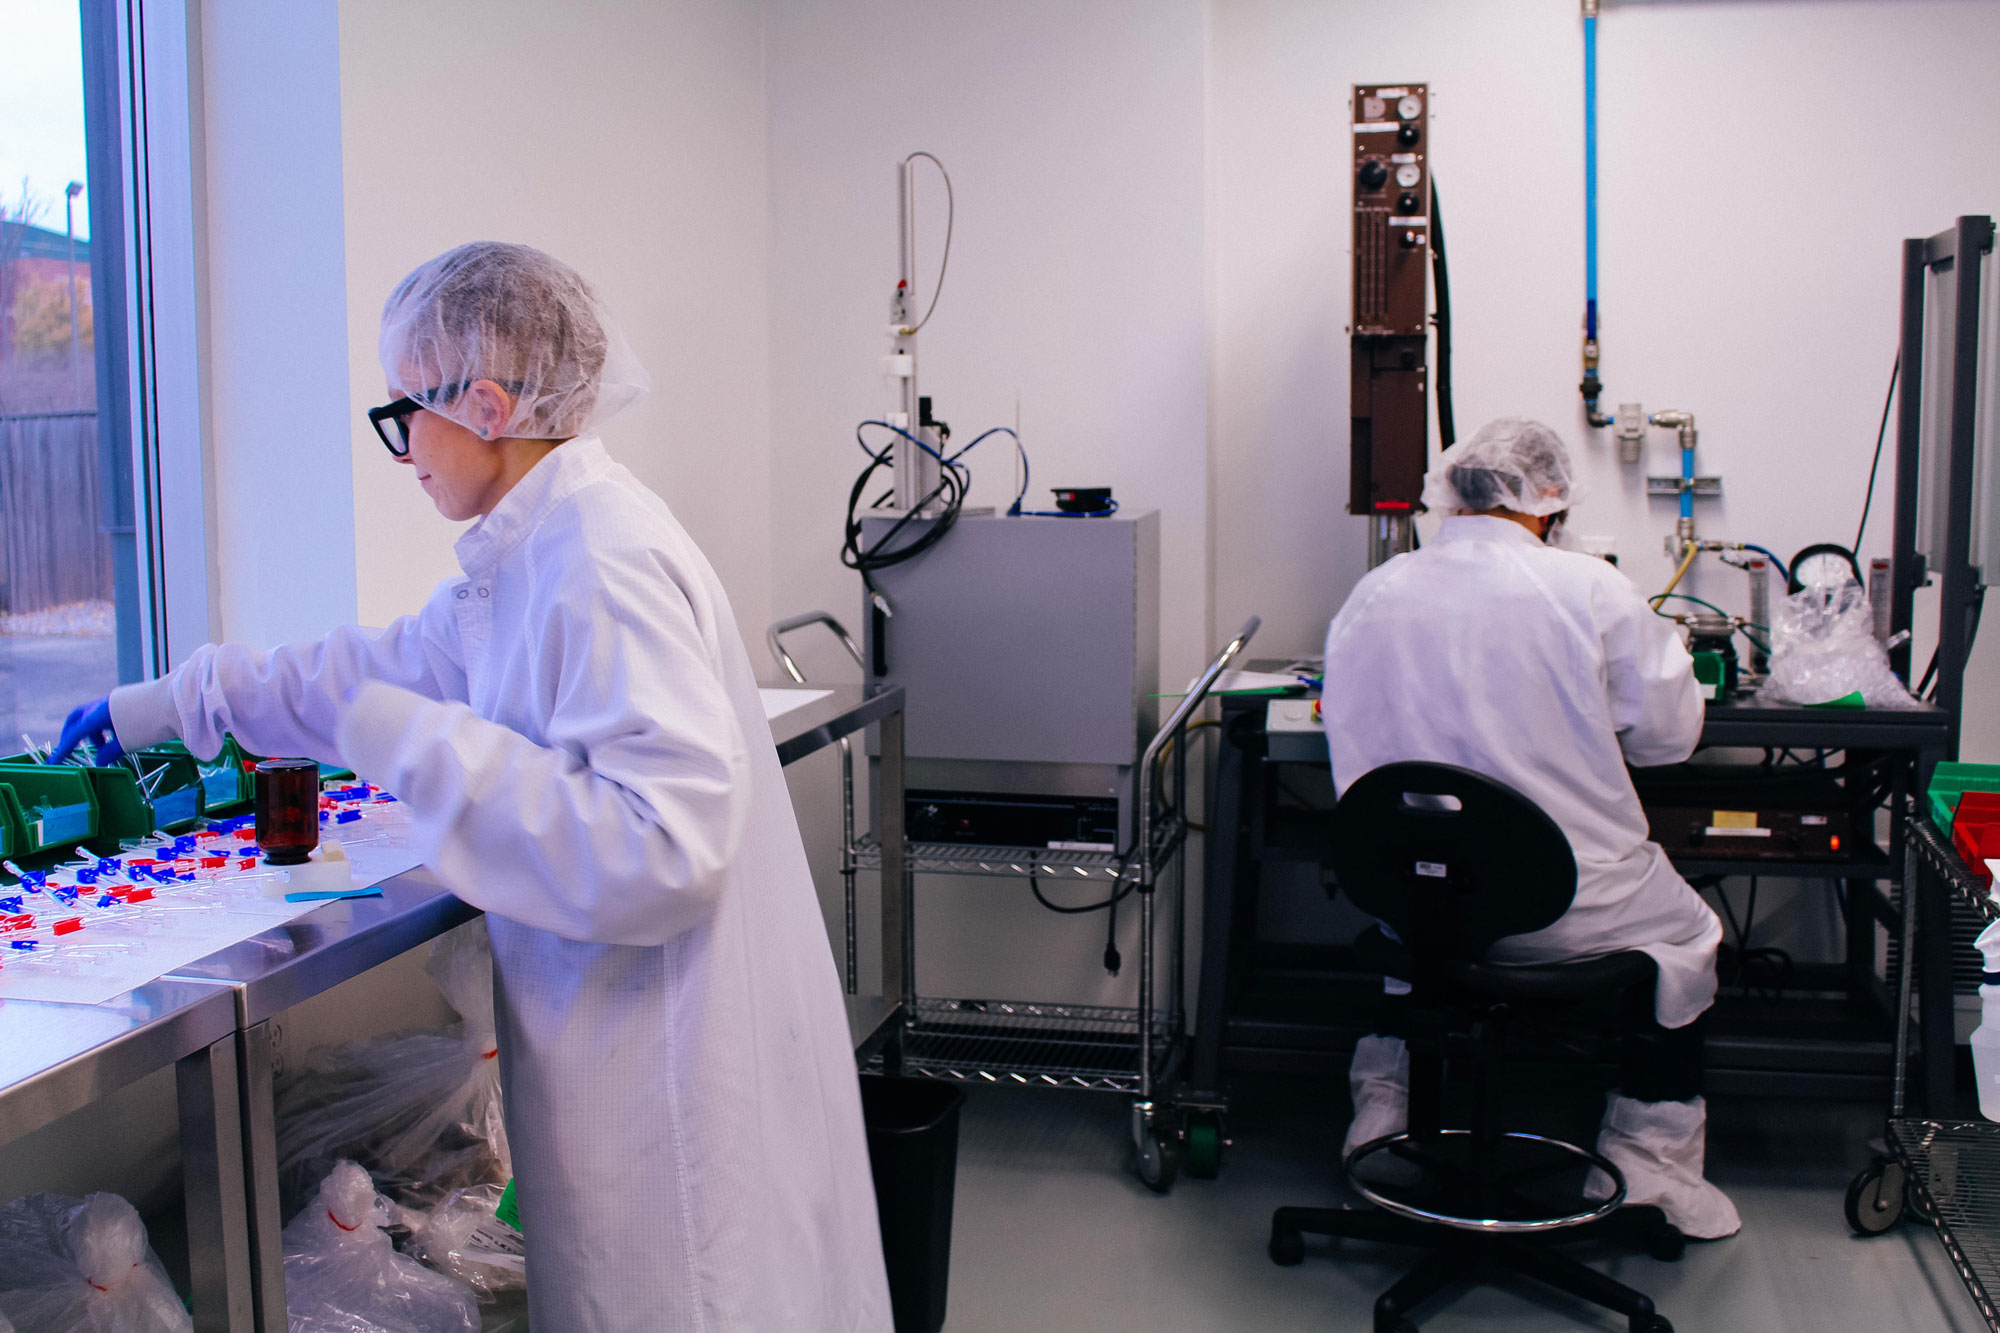 An image of lab workers closing out their day in the iso class 7 cleanroom.